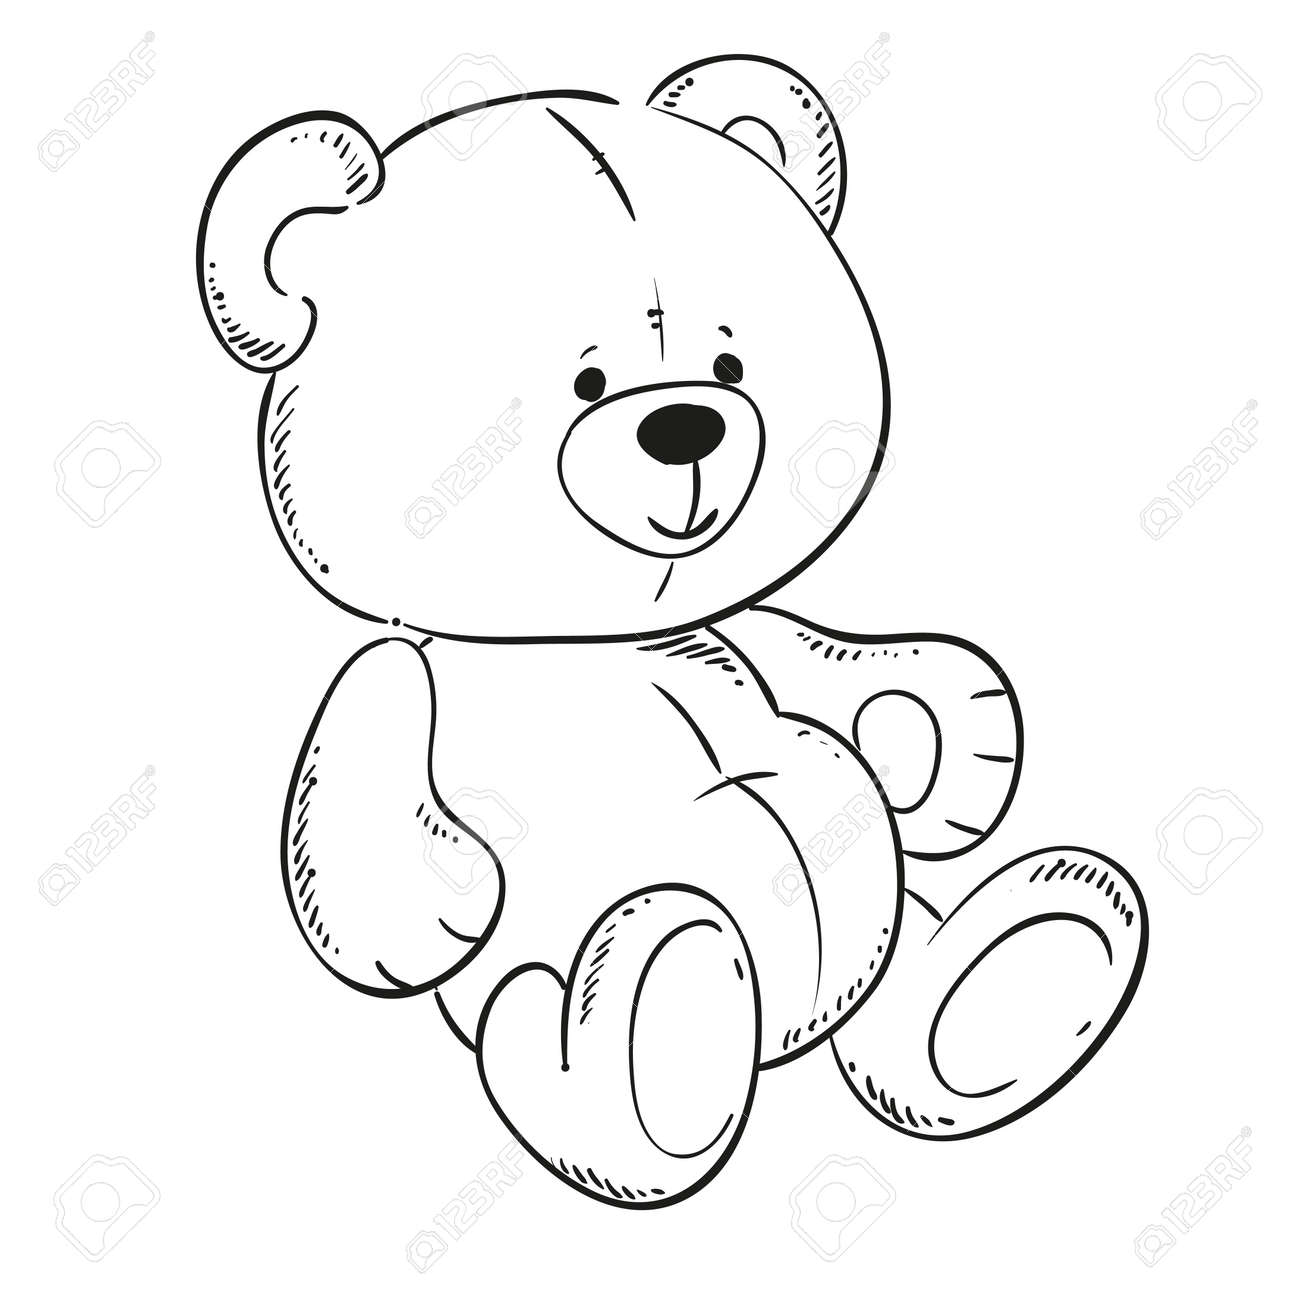 Cute Teddy Bear. Black Outline For Coloring Book. Vector Contour ...